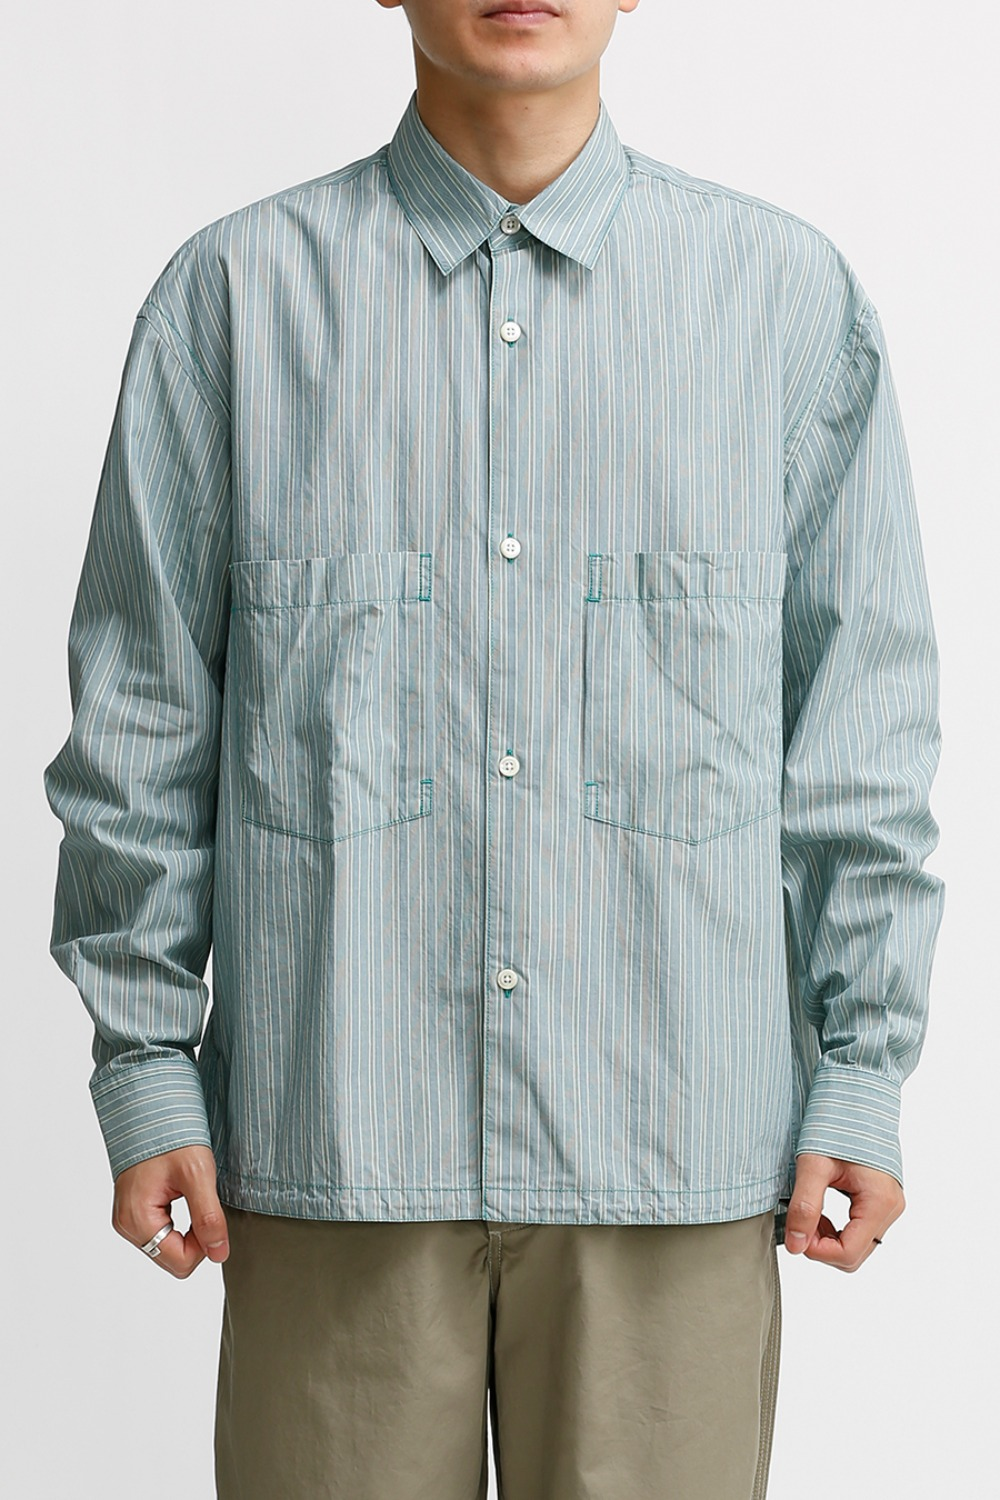 OVERSIZED SHIRT / PALE MINT & BLUE STRIPE